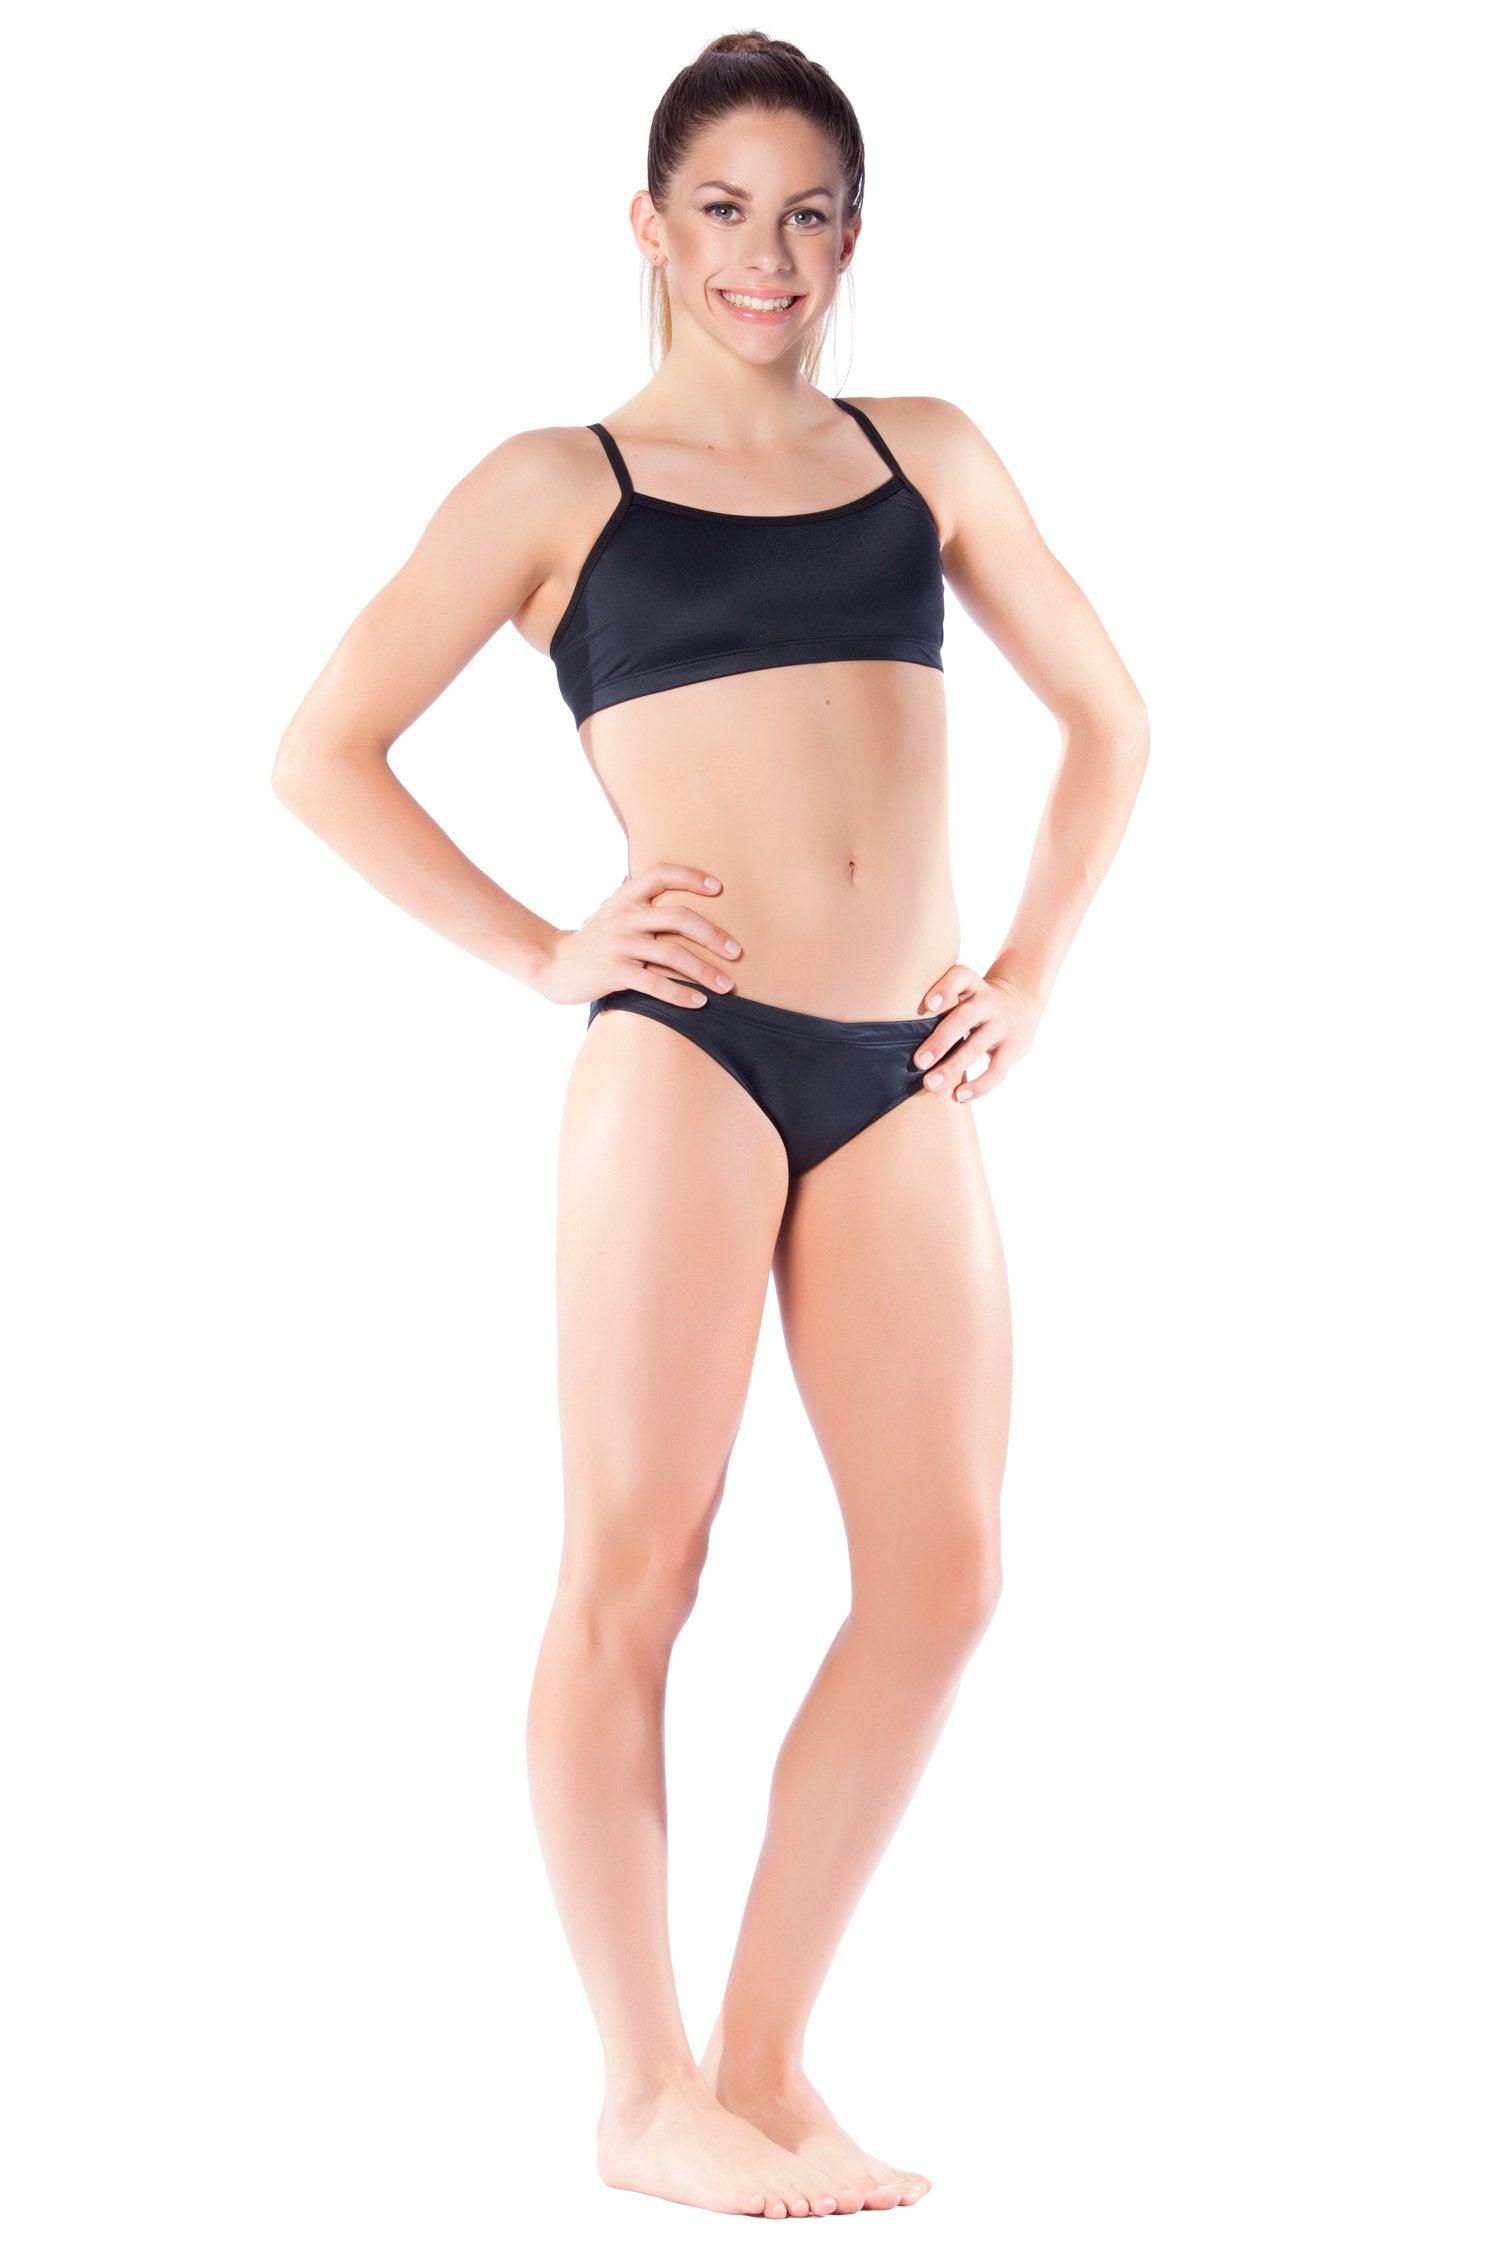 Pitch Black Girls Two Piece - Shop Zealous Training Swimwear